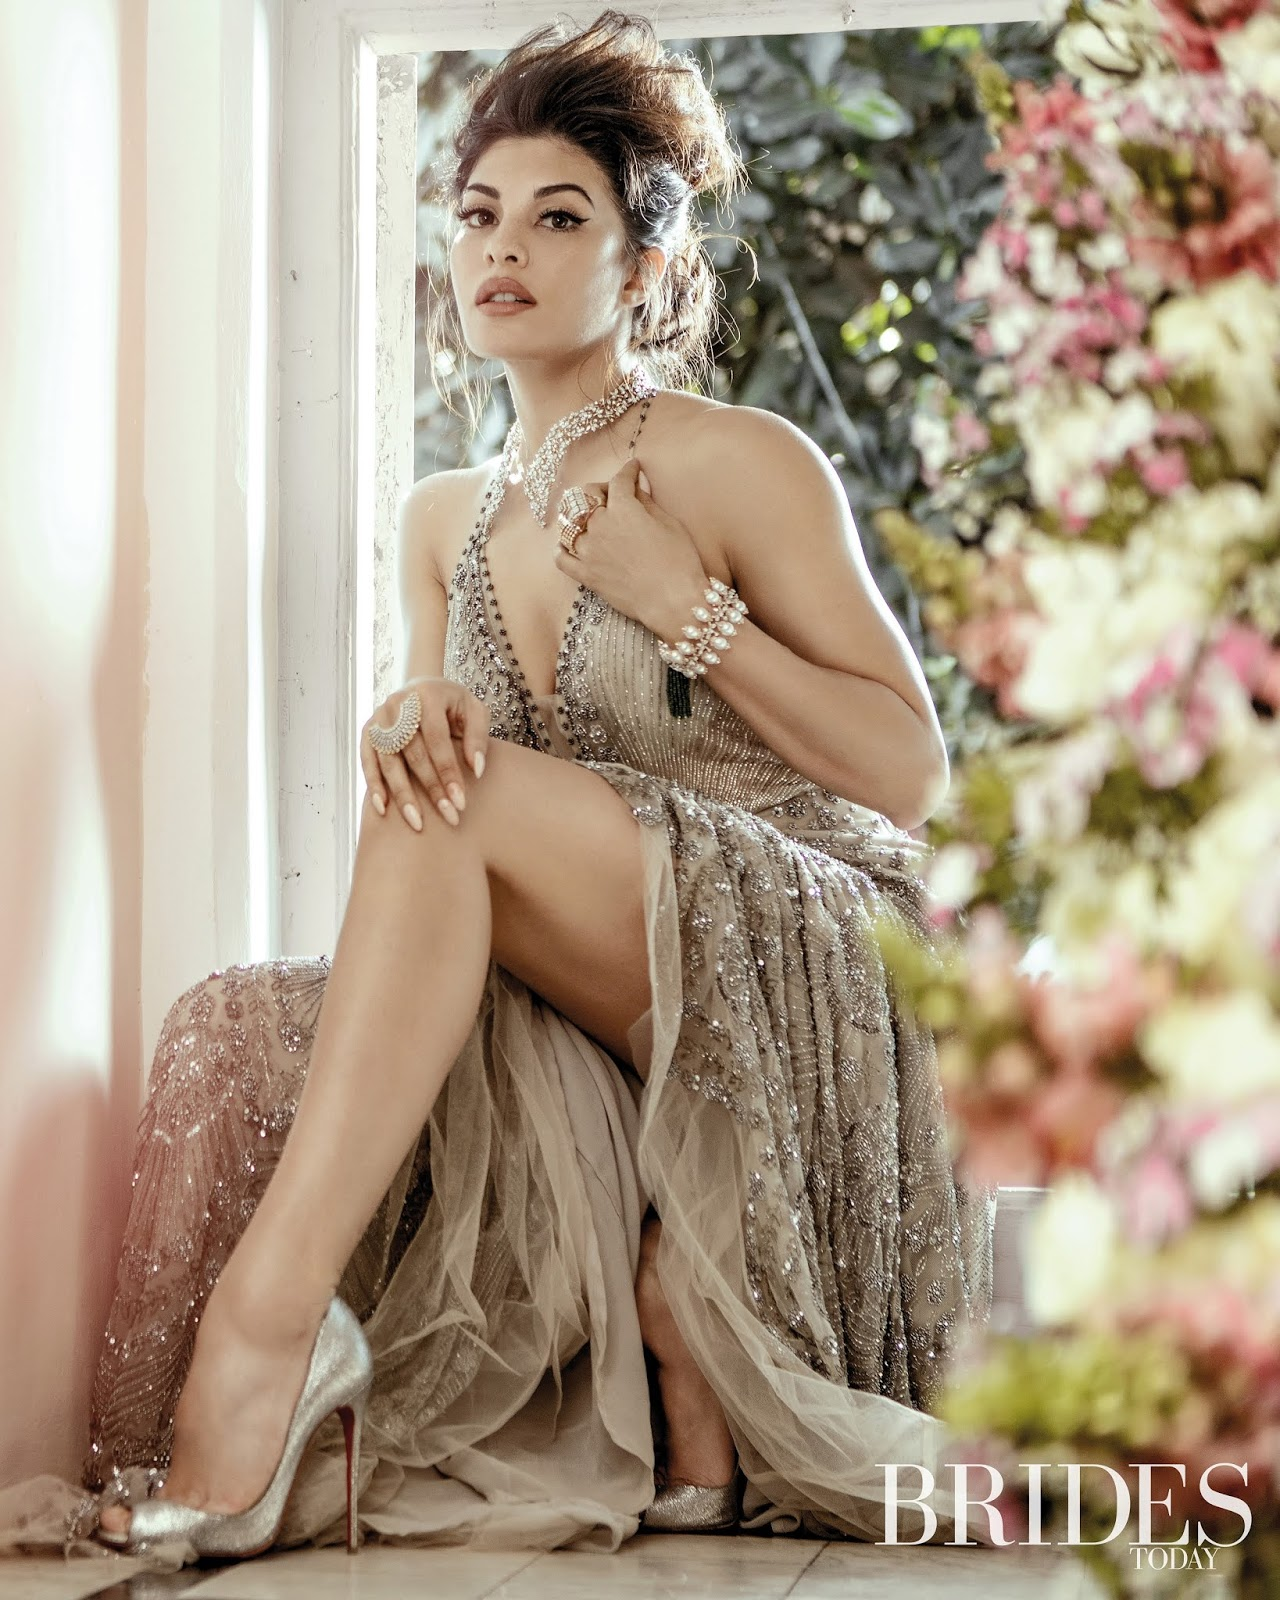 Jacqueline Fernandez Sizzles on the April 2019 Cover of Brides Today